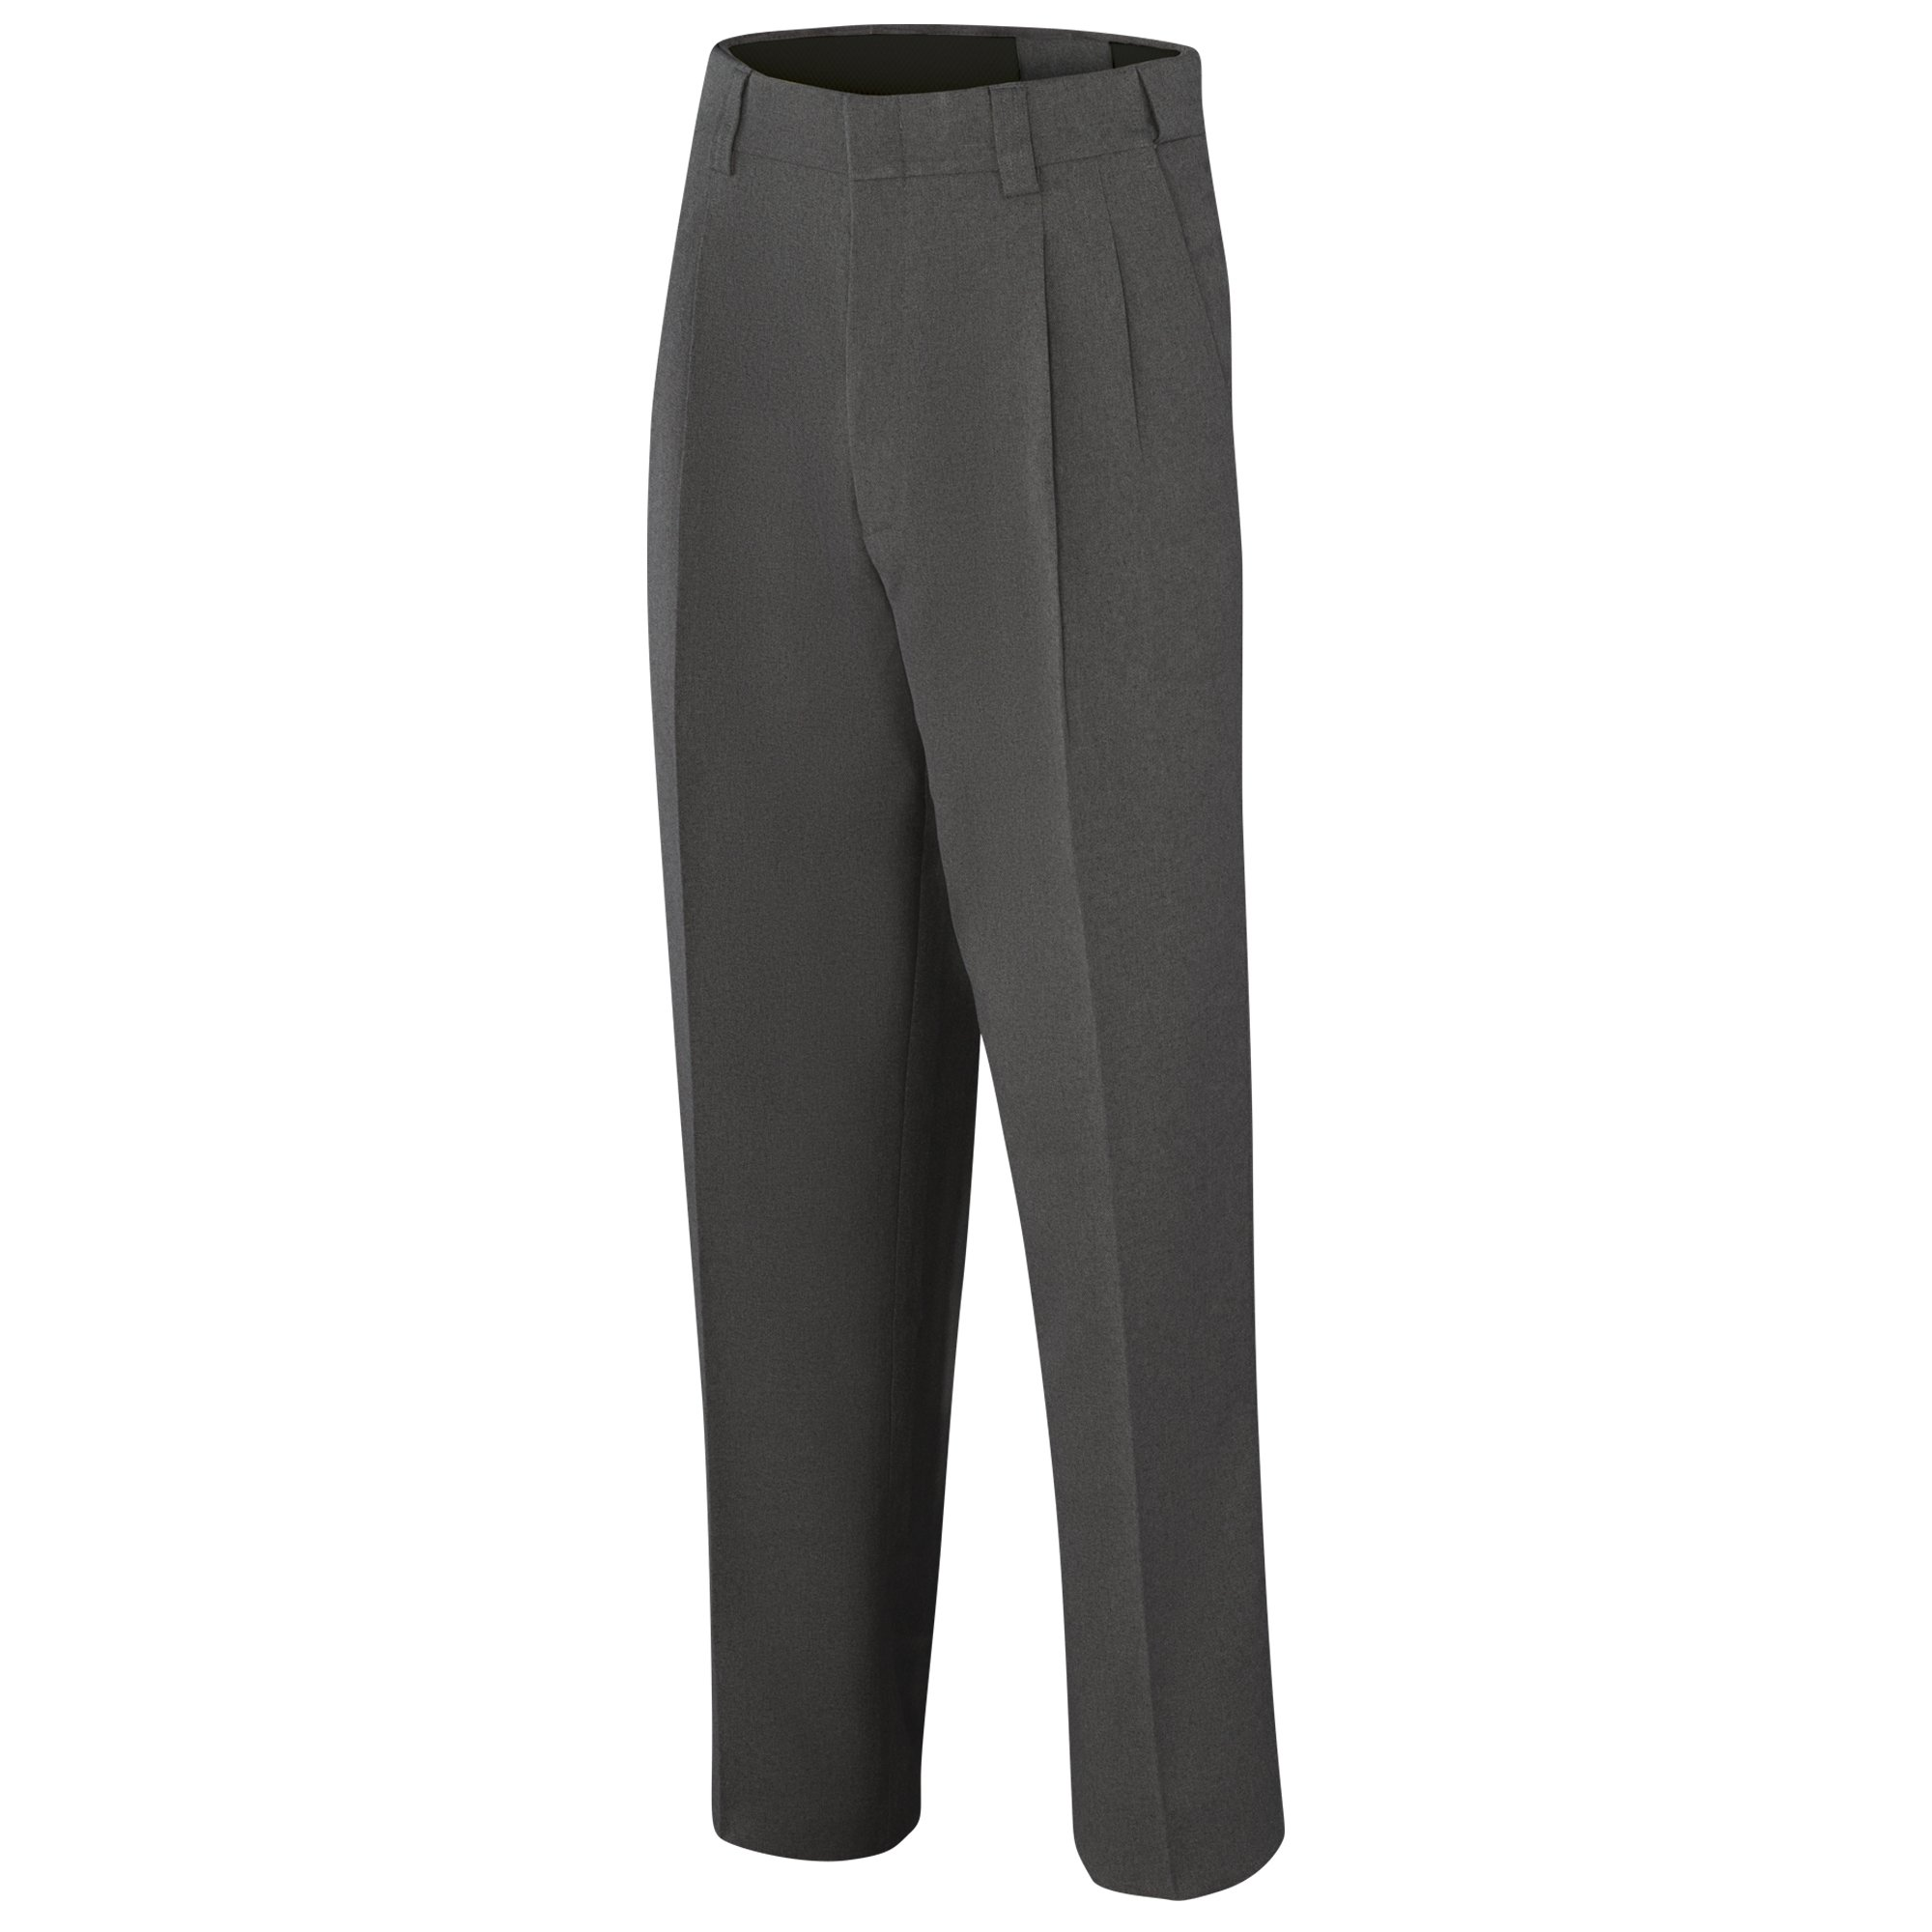 Adams USA ADMBB375-32-CG Umpire Combo Pleated Expandable Waist Uniform Pants, Charcoal Grey, Size 32